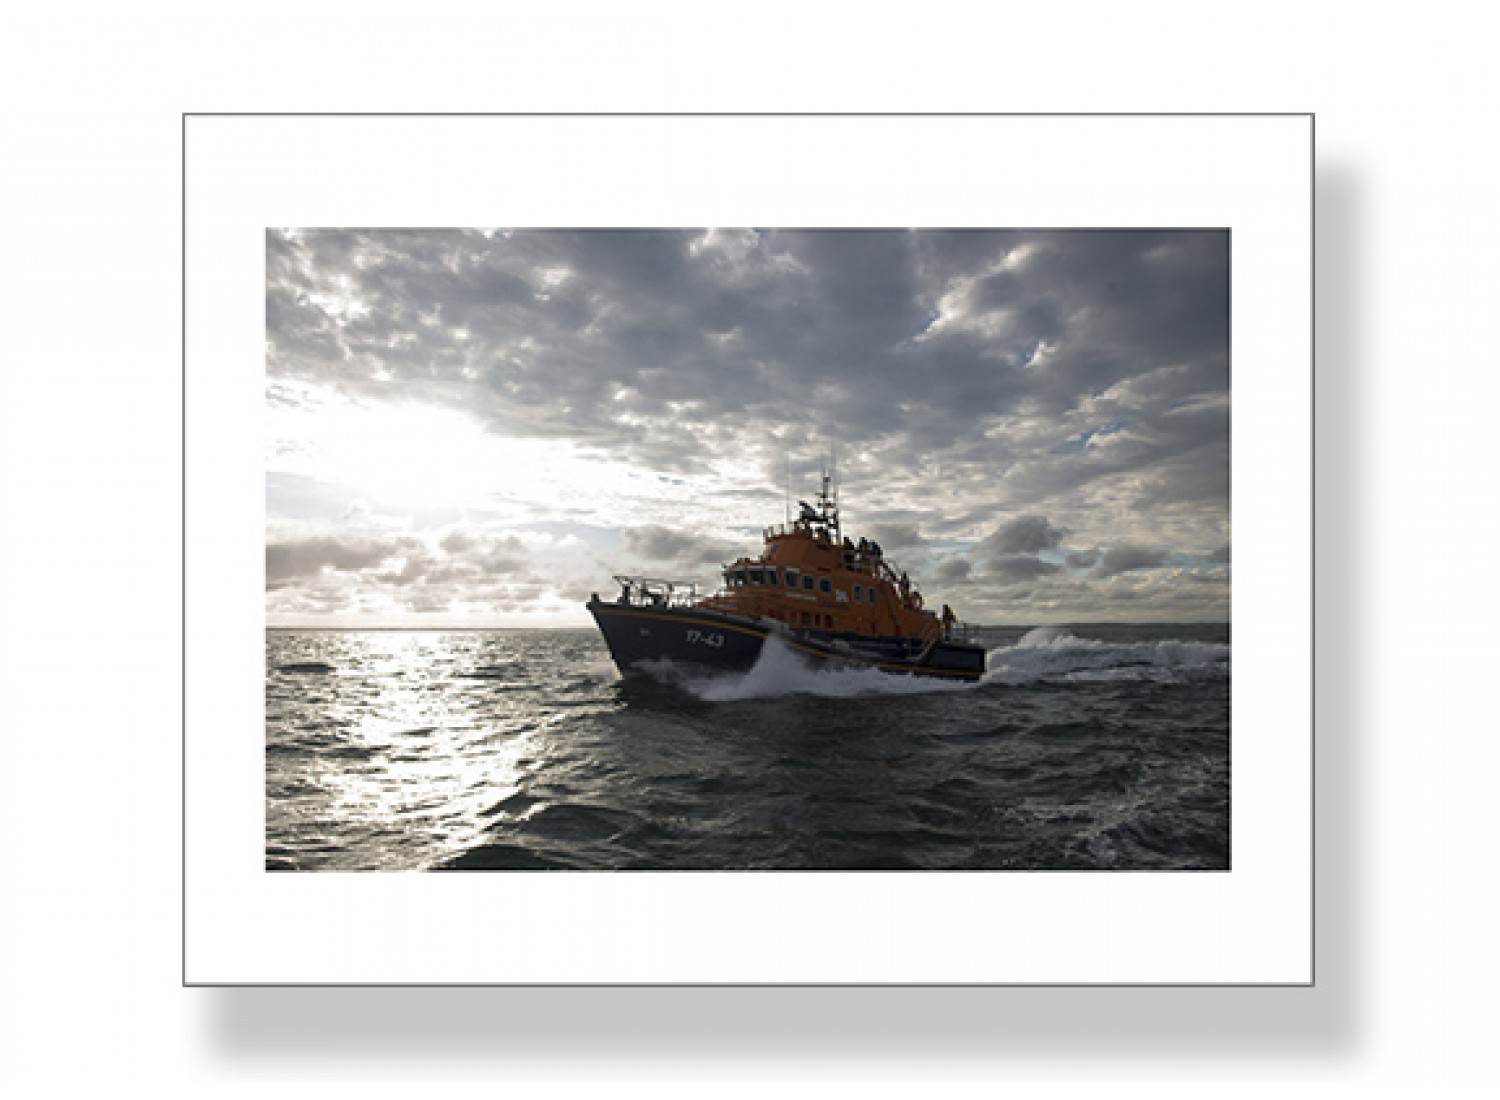 RNLI Trent Class Lifeboat